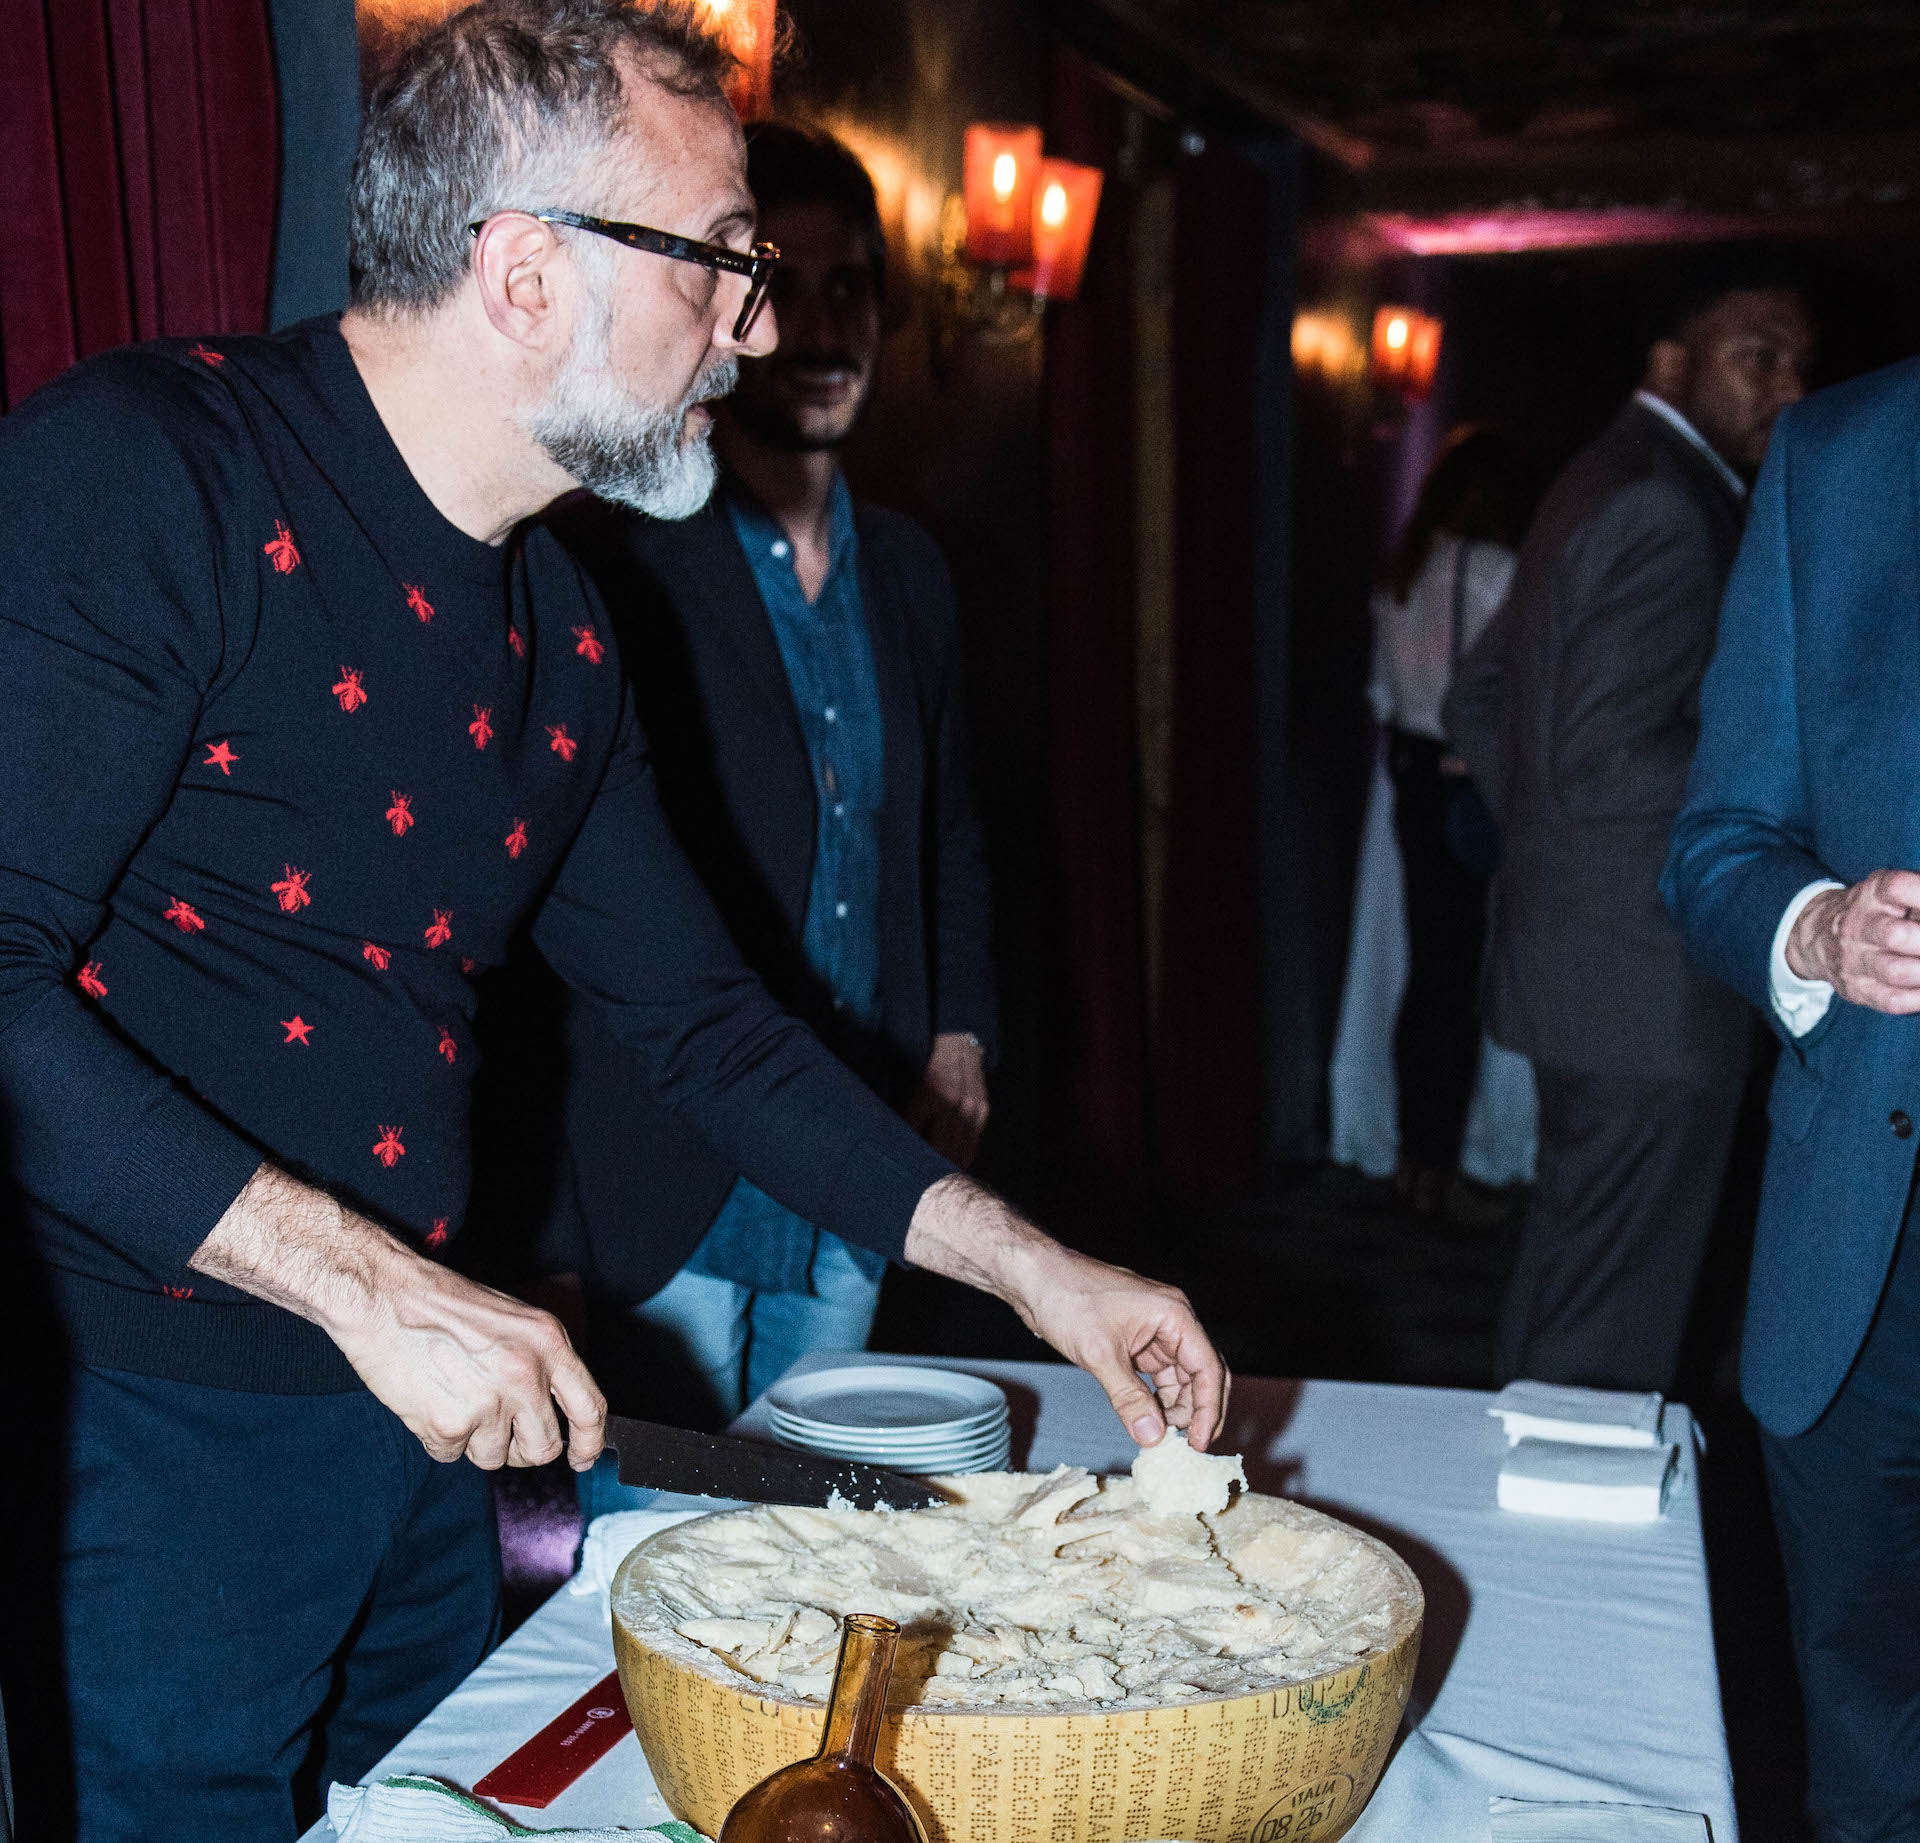 Massimo serving aged parmigiano reggiano at the Ace Hotel.